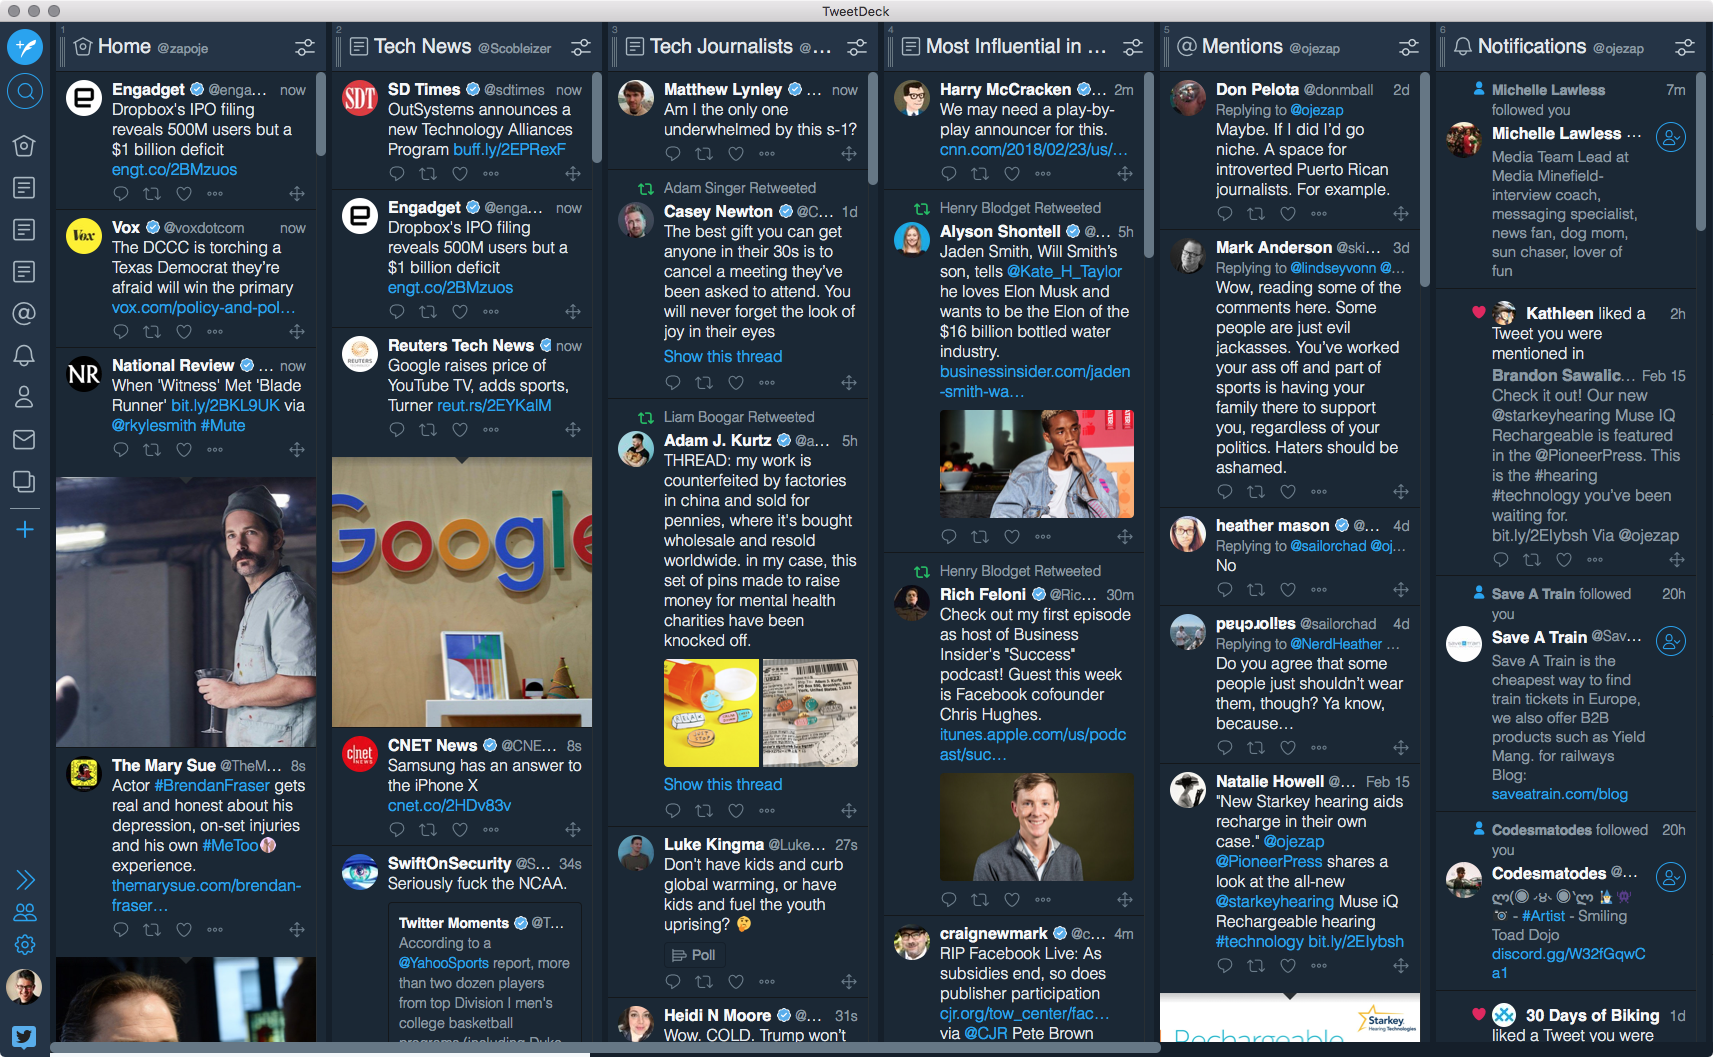 It's TweetDeck, but with all the important features